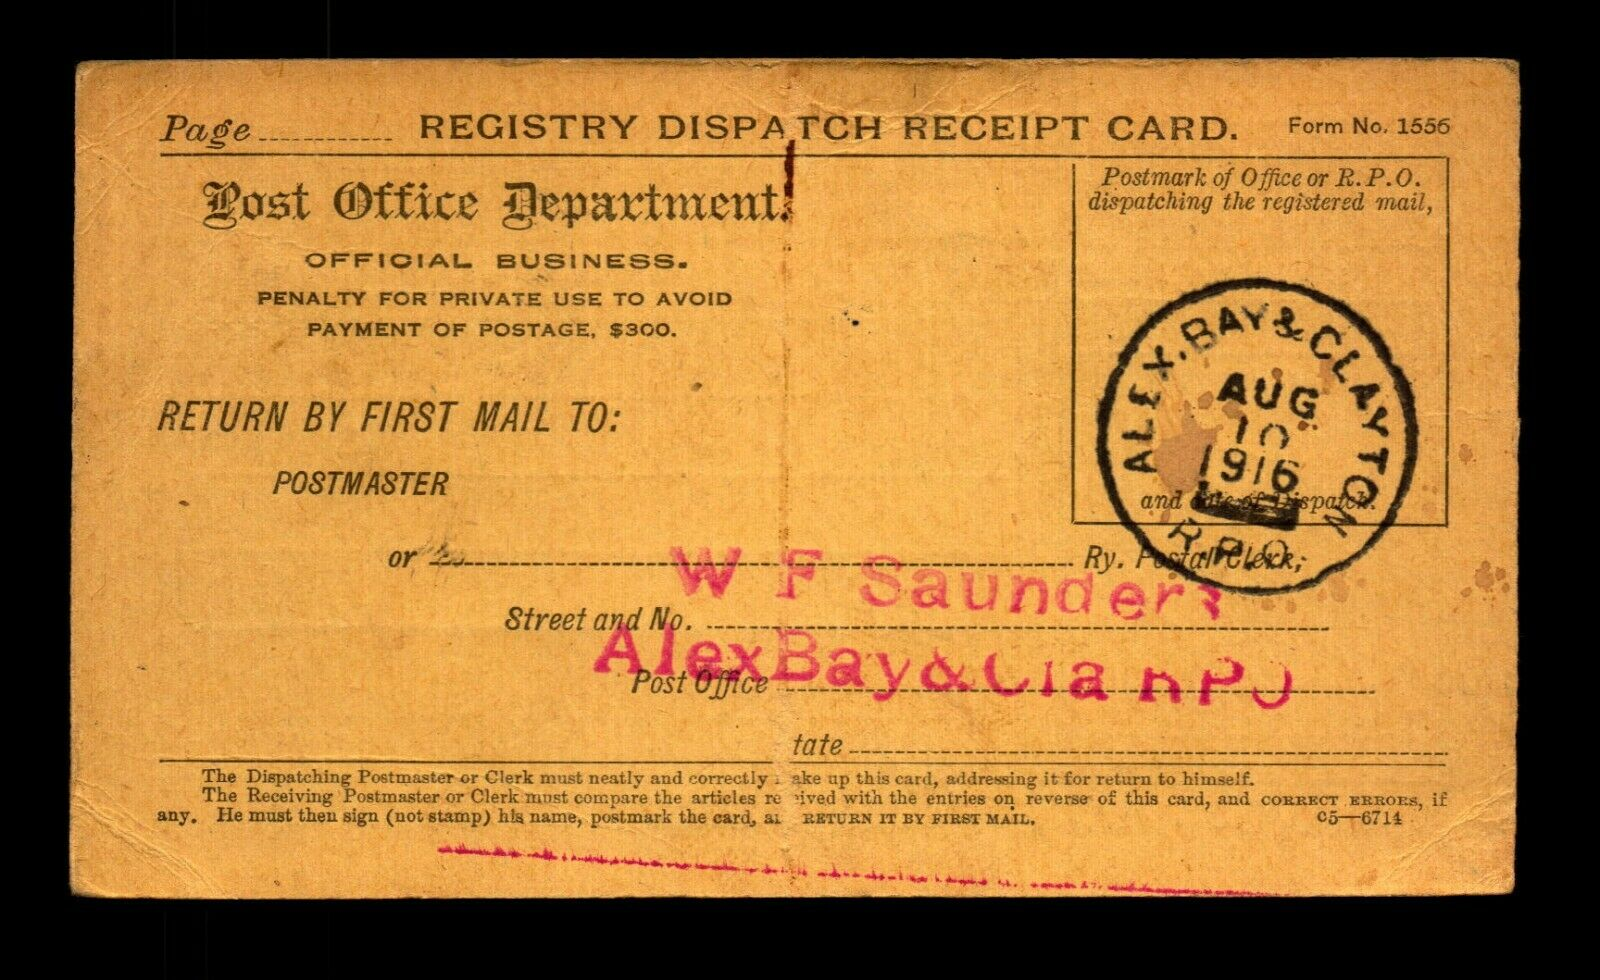 1916 Alex Bay Clayton RPO Receipt Card - L19485 - $4.23